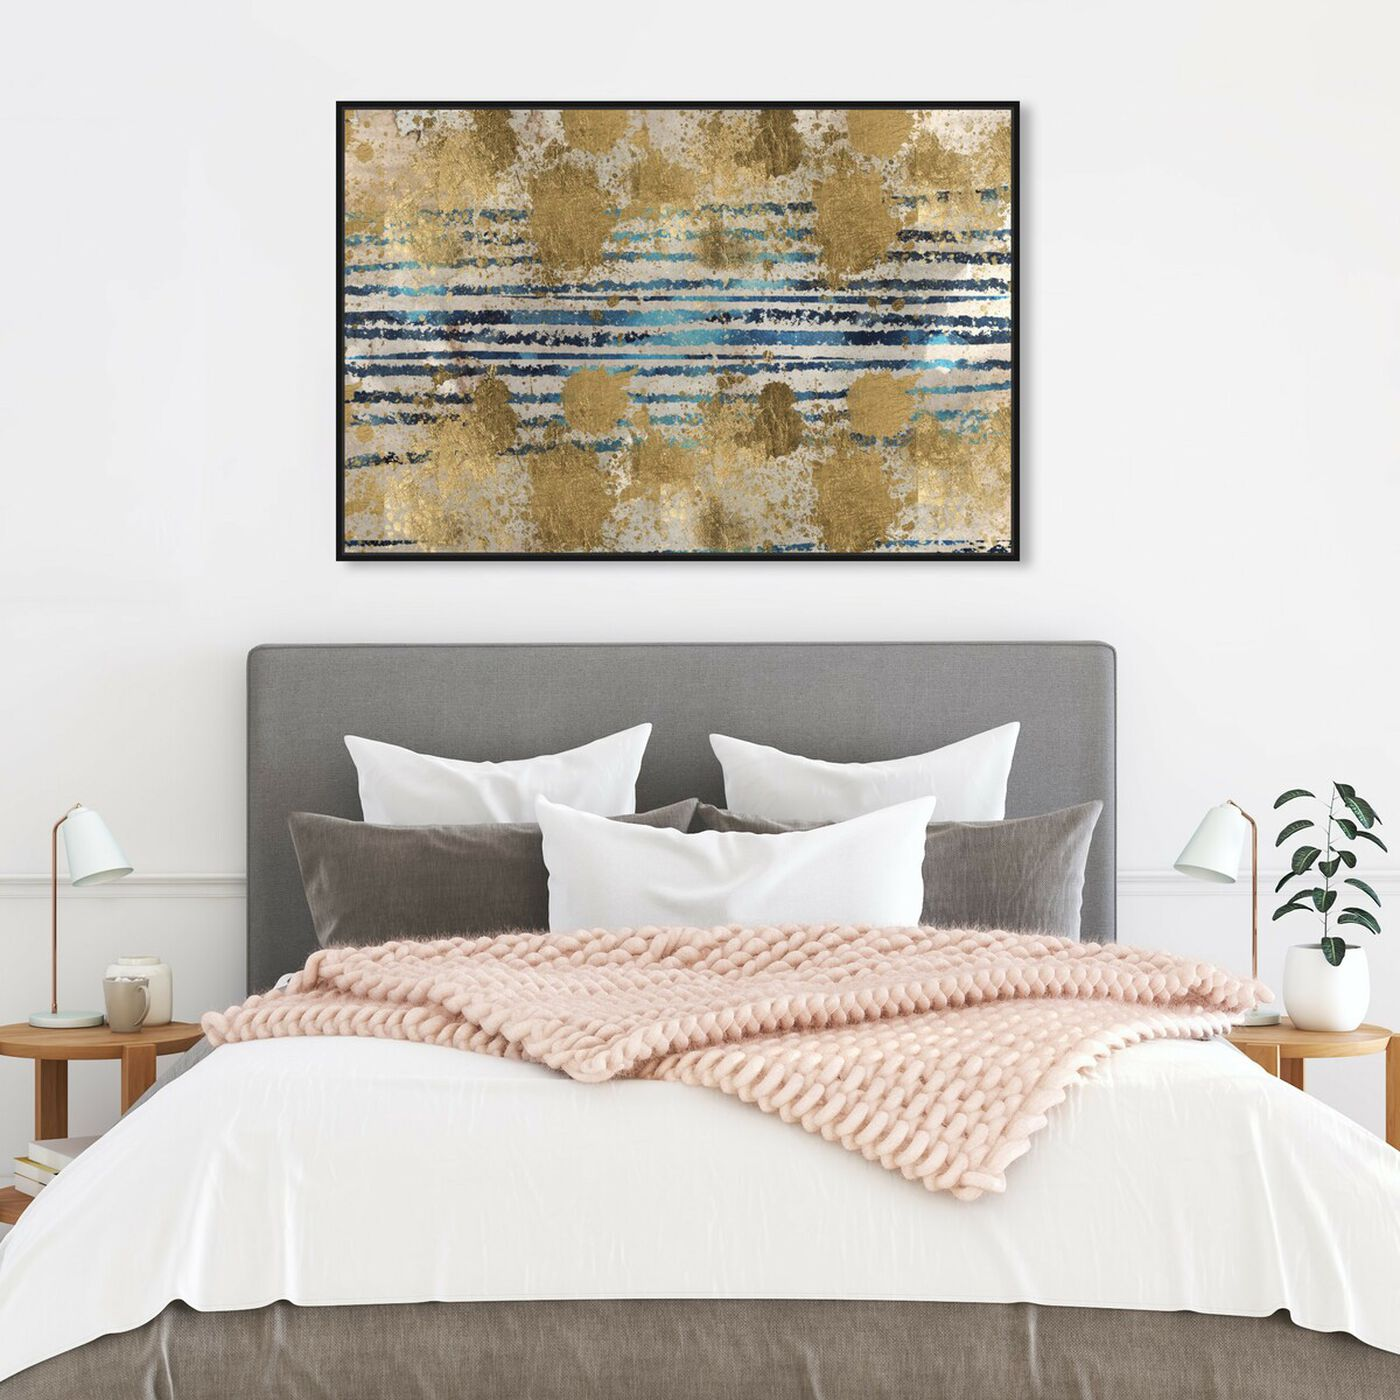 Hanging view of Wealth of Love featuring abstract and shapes art.